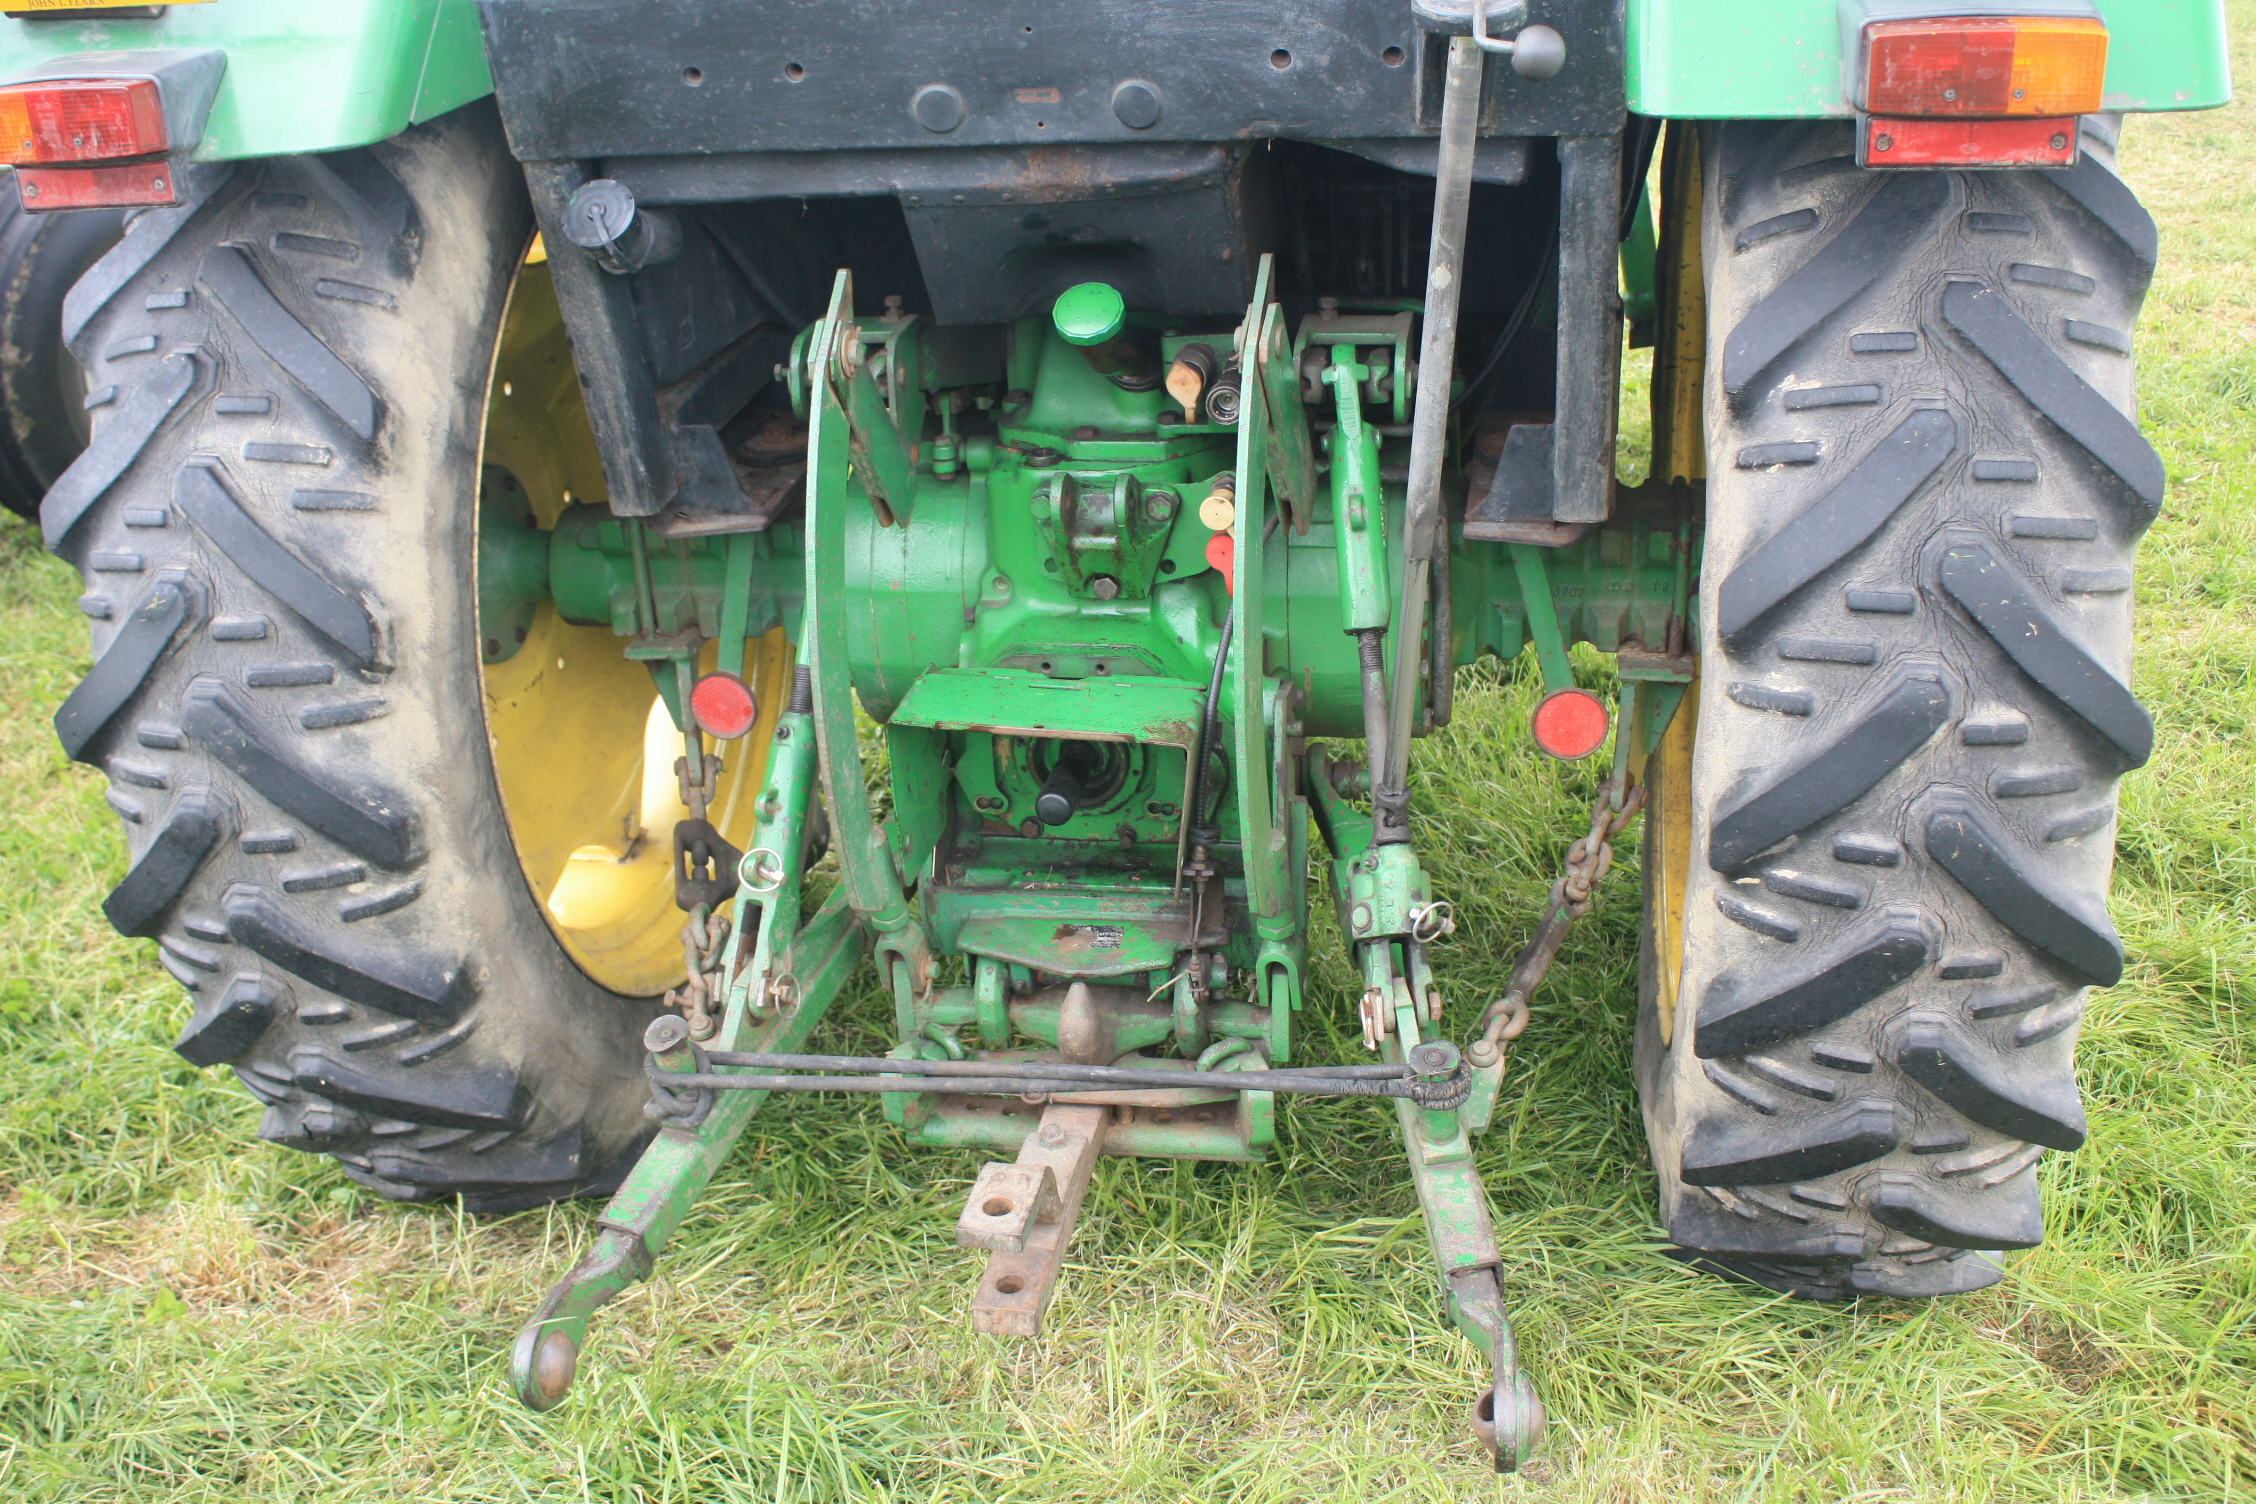 John Deere 2040 Wiring Harness Electrical Diagrams 1020 2040s Tractor Construction Plant Wiki Fandom B